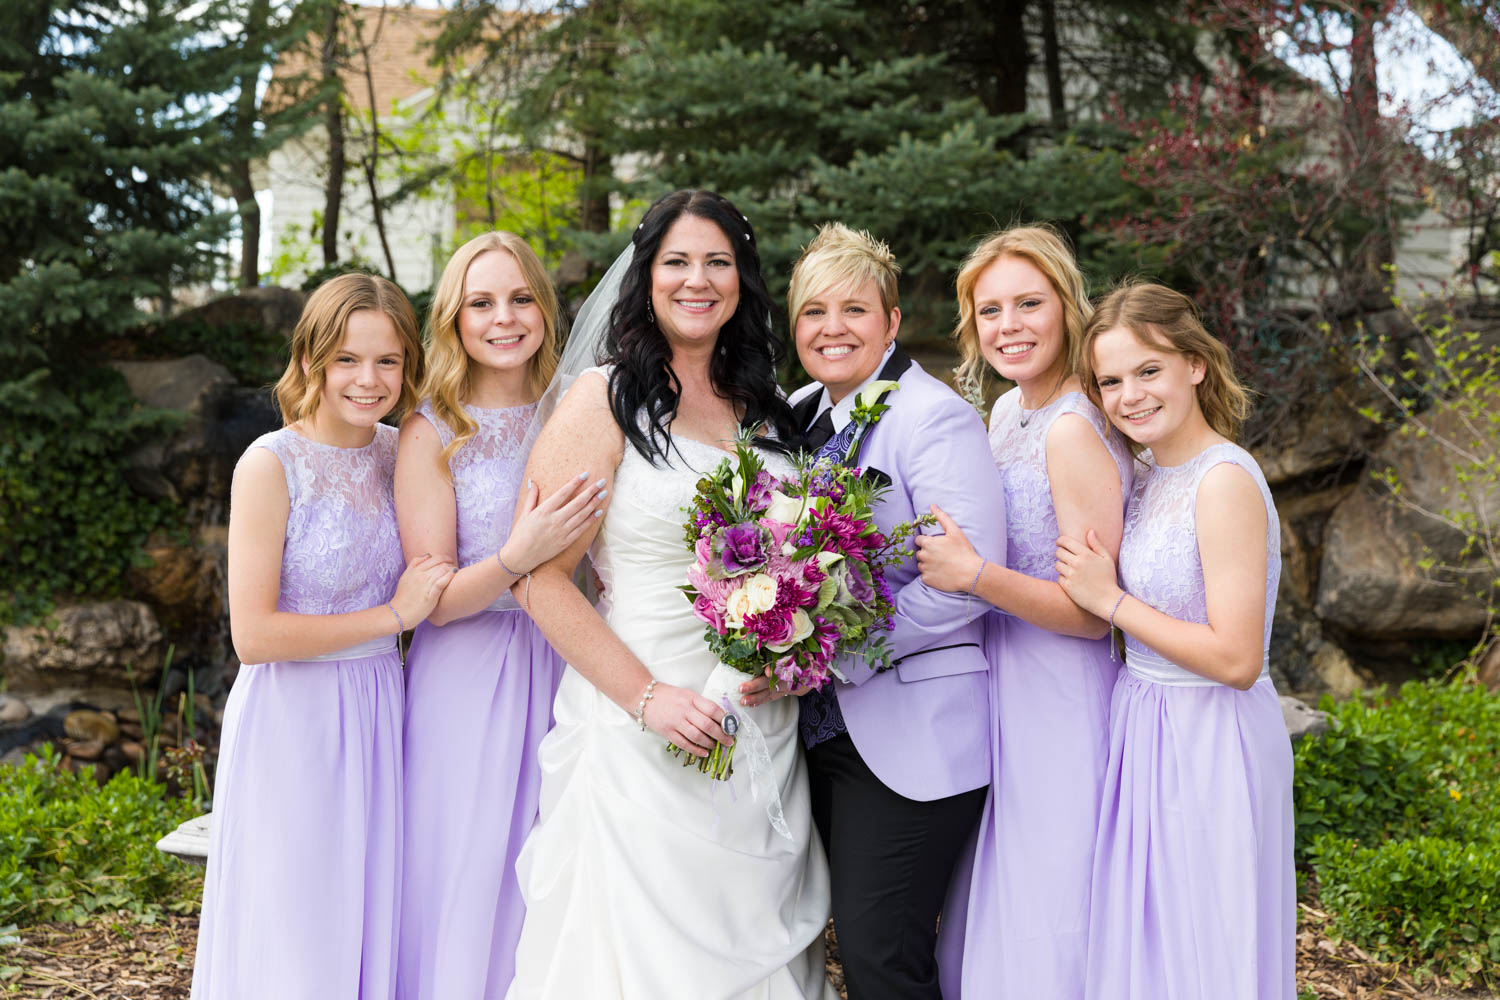 Wedding photo with the family who were the bridesmaids